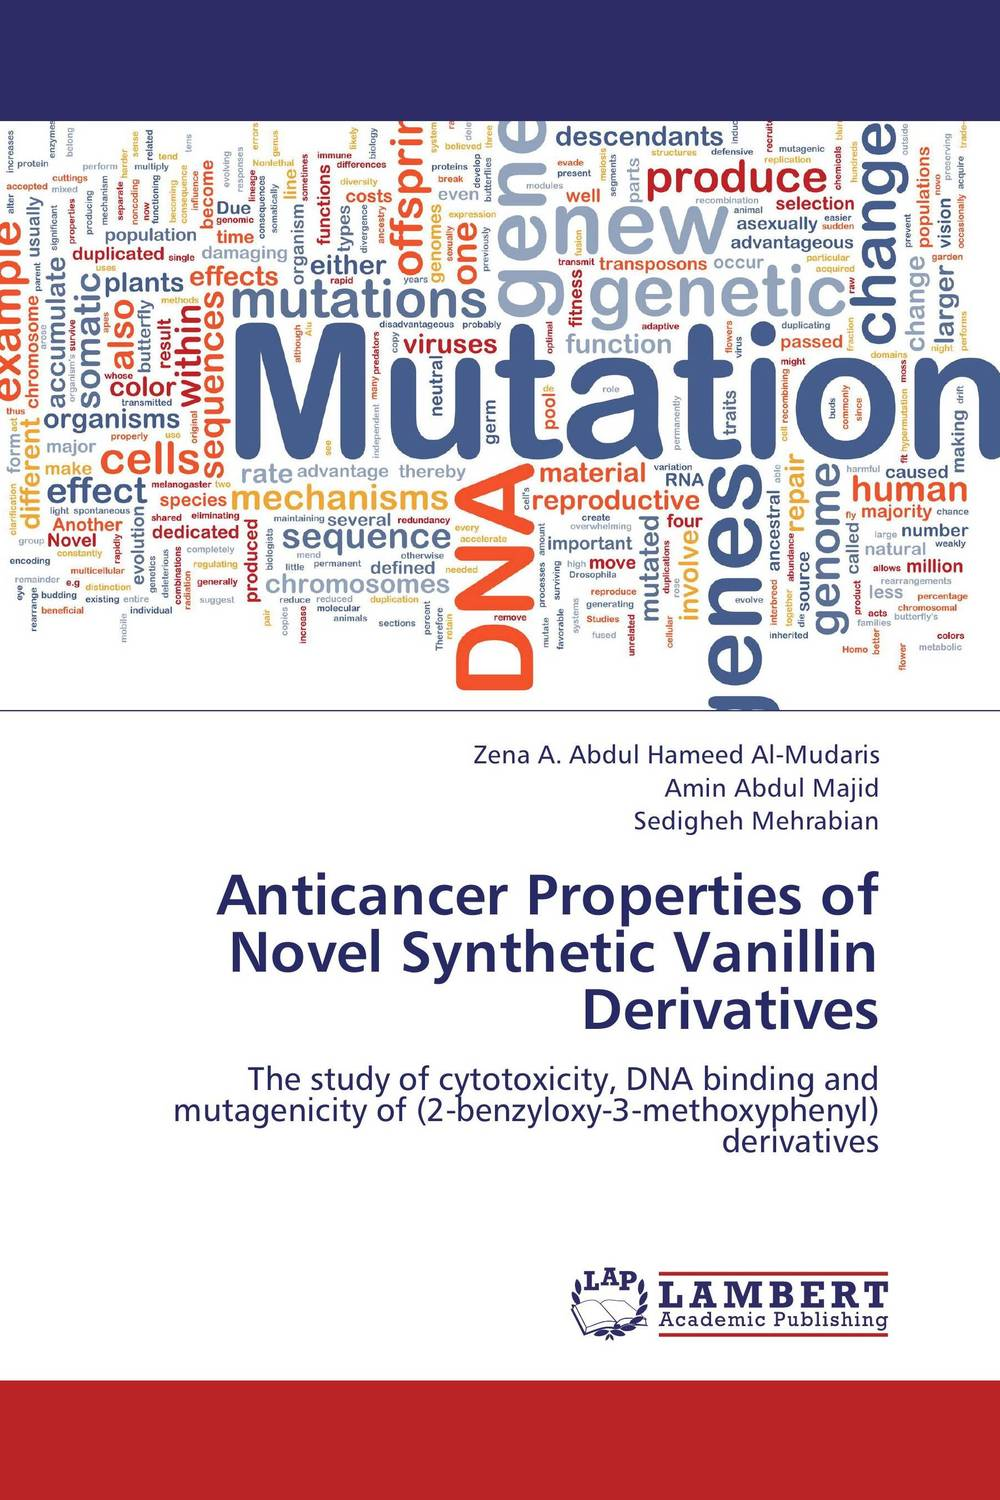 Anticancer Properties of Novel Synthetic Vanillin Derivatives modified pnas synthesis and interaction studies with dna